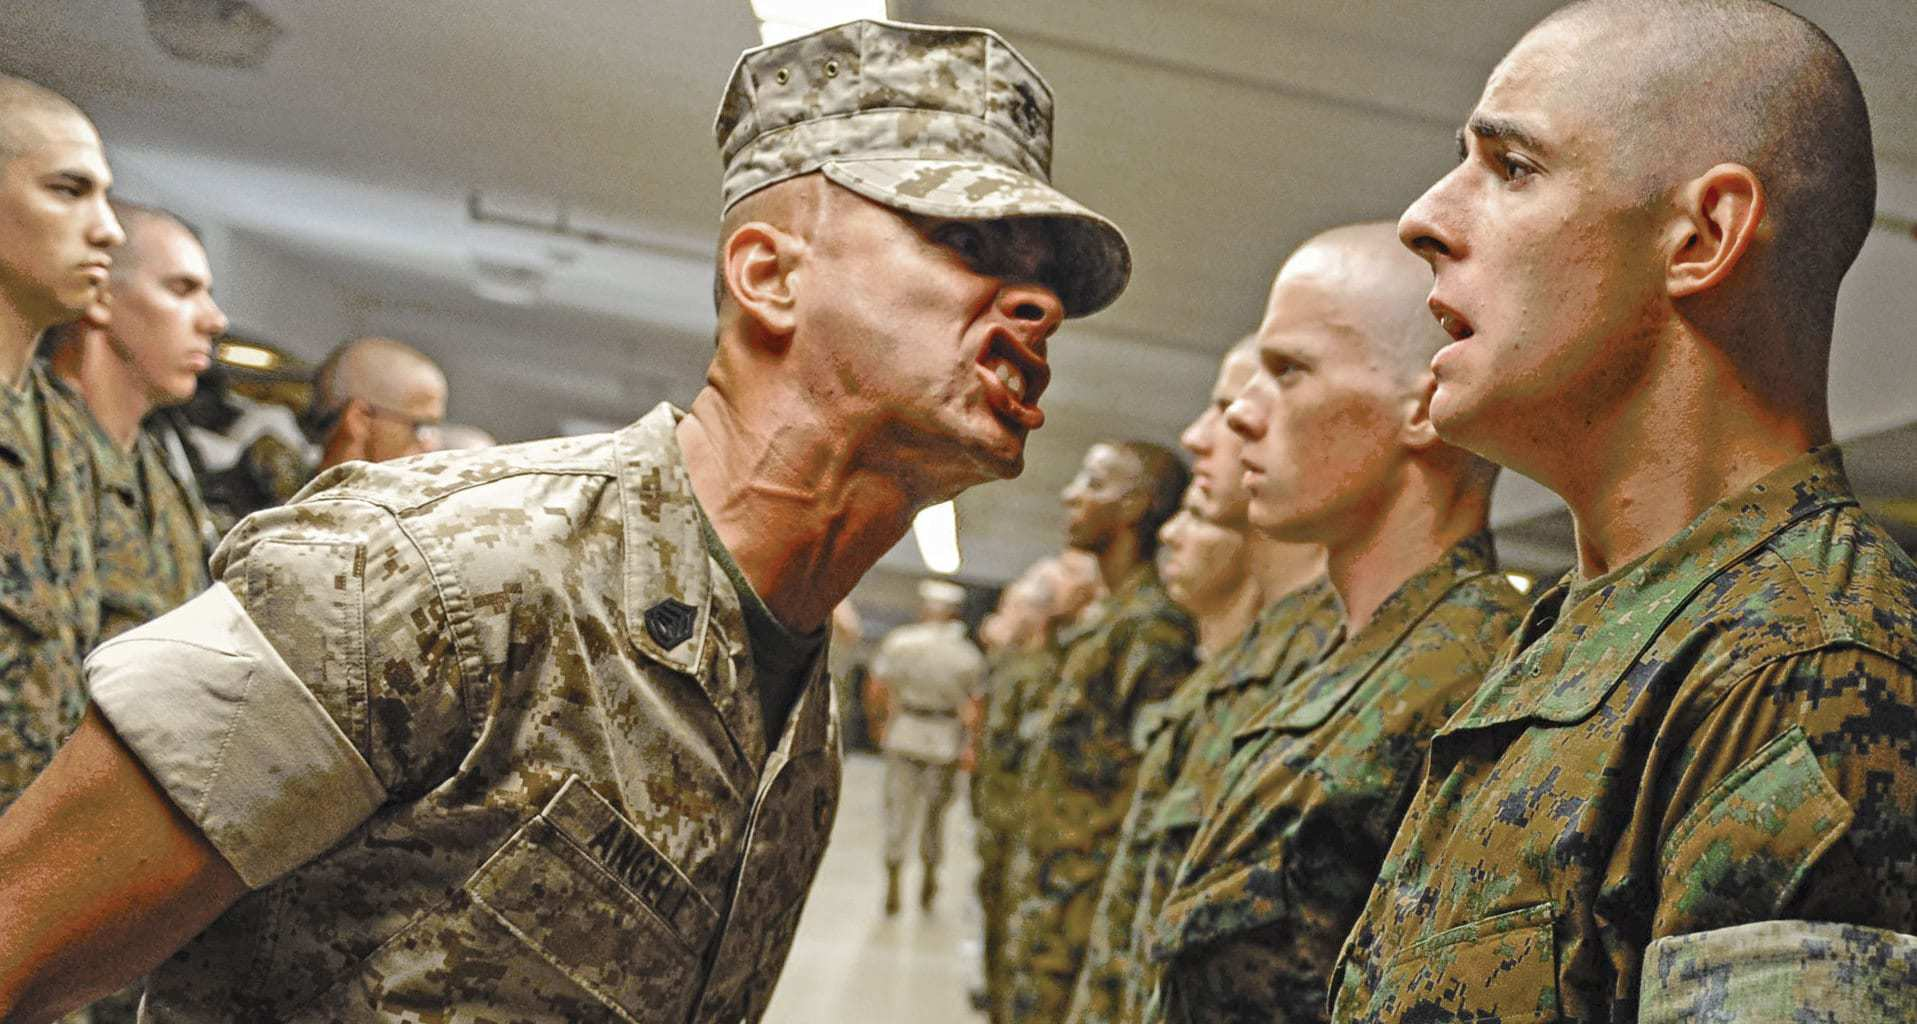 3 Things Every New Military Recruit Must Do With Their Money